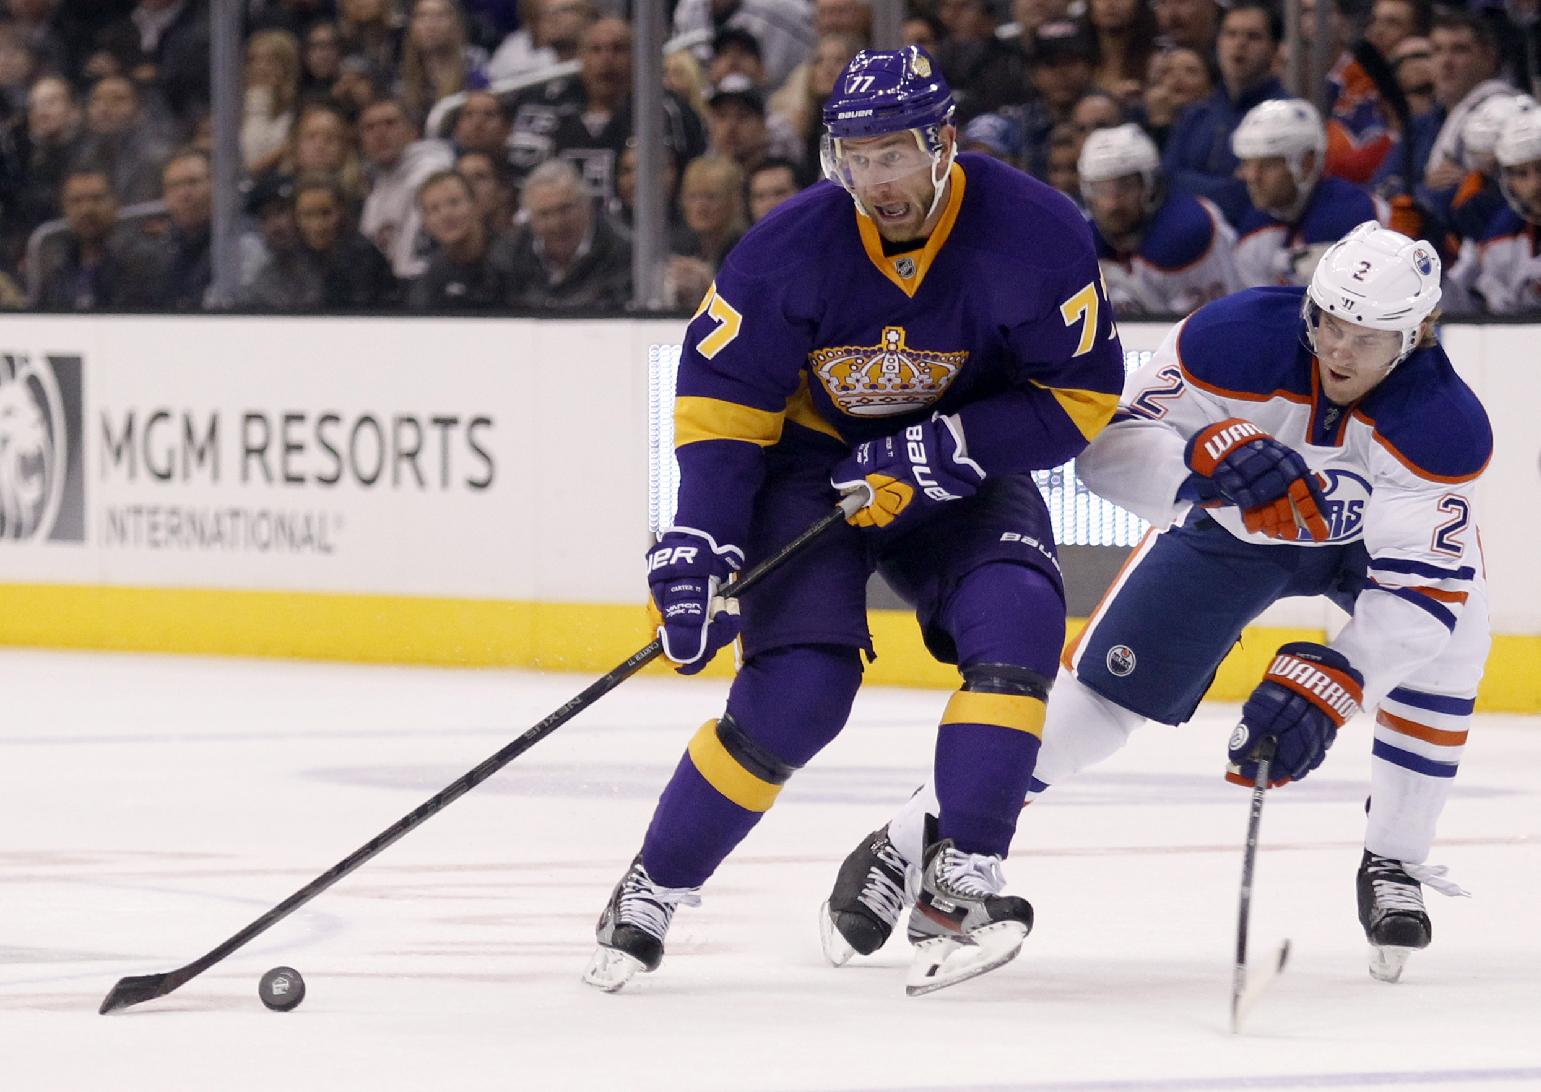 Los Angeles Kings center Jeff Carter (77) battles Edmonton Oilers defenseman Jeff Petry (2) for control of the puck during the second period of an NHL hockey game Sunday, Oct. 27, 2013, in Los Angeles